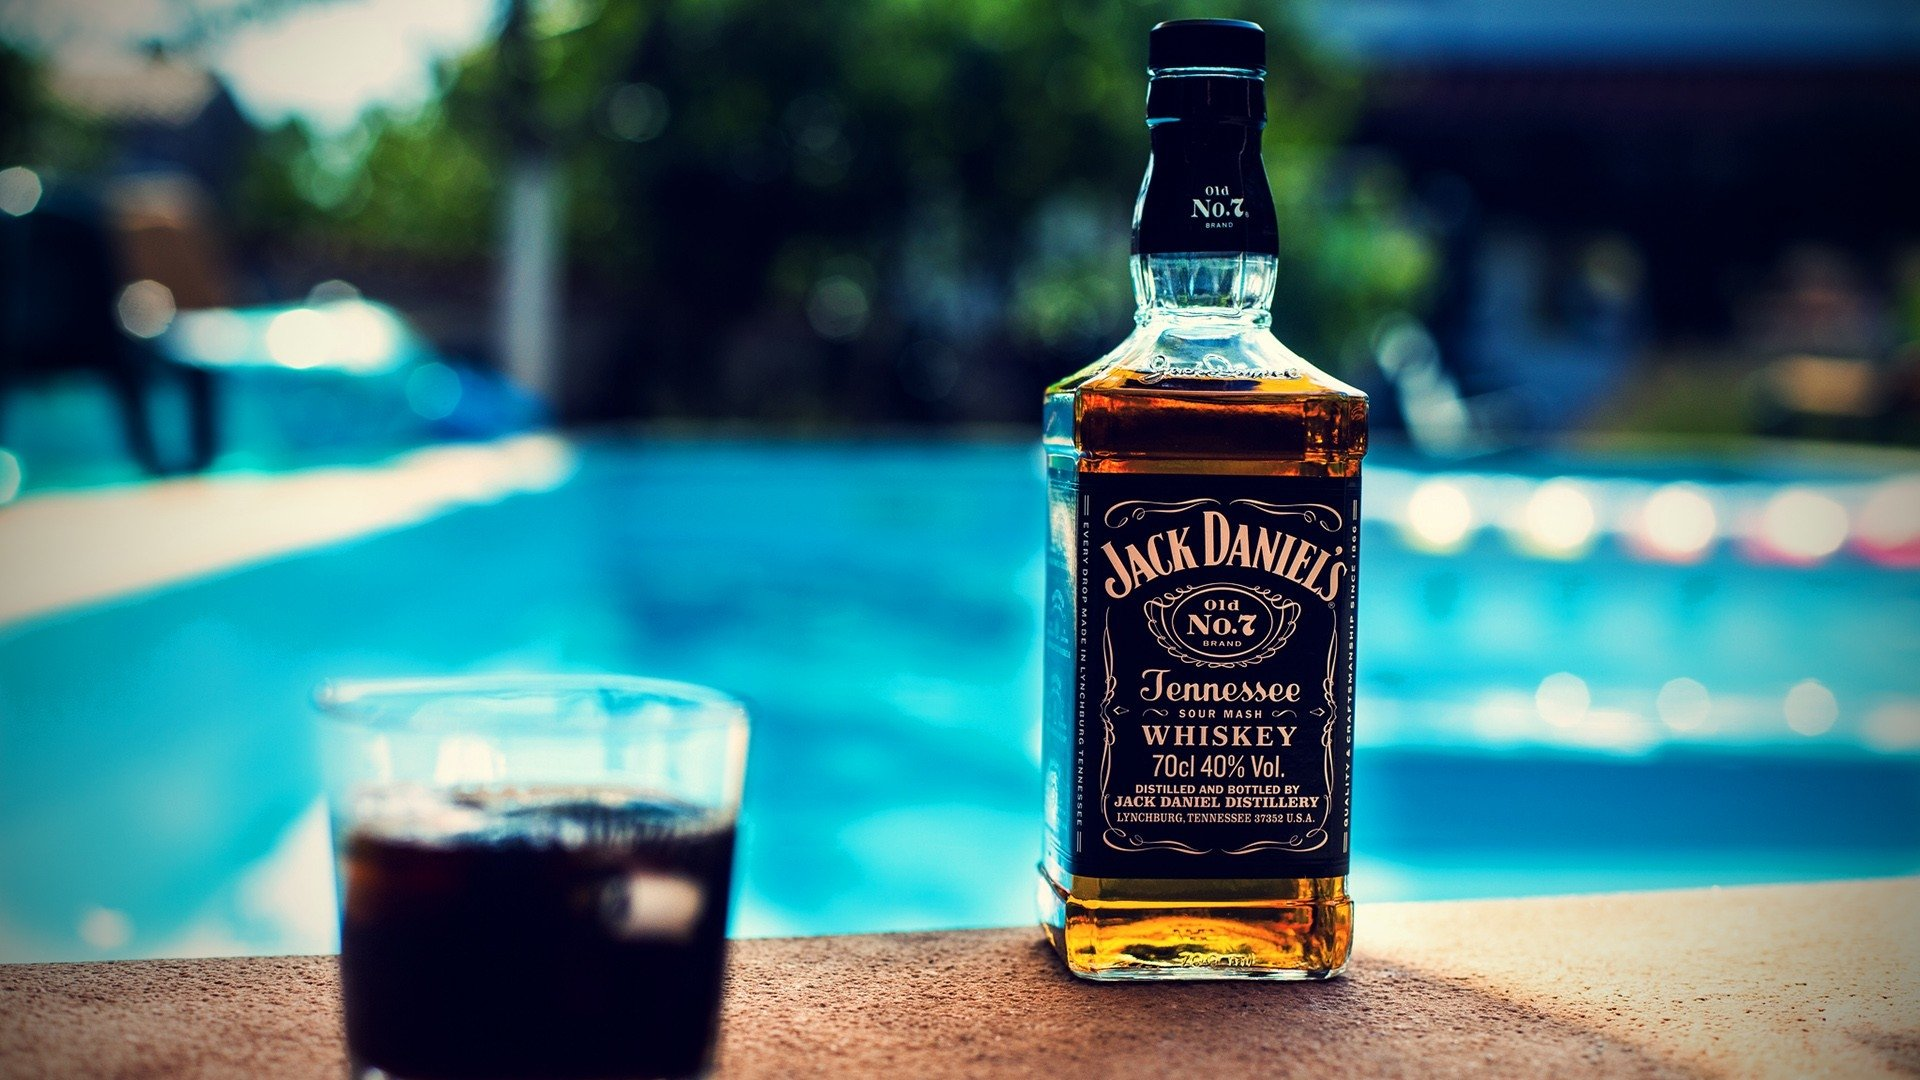 Jack daniels full hd wallpaper and background image 1920x1080 products jack daniels alcohol wallpaper voltagebd Images